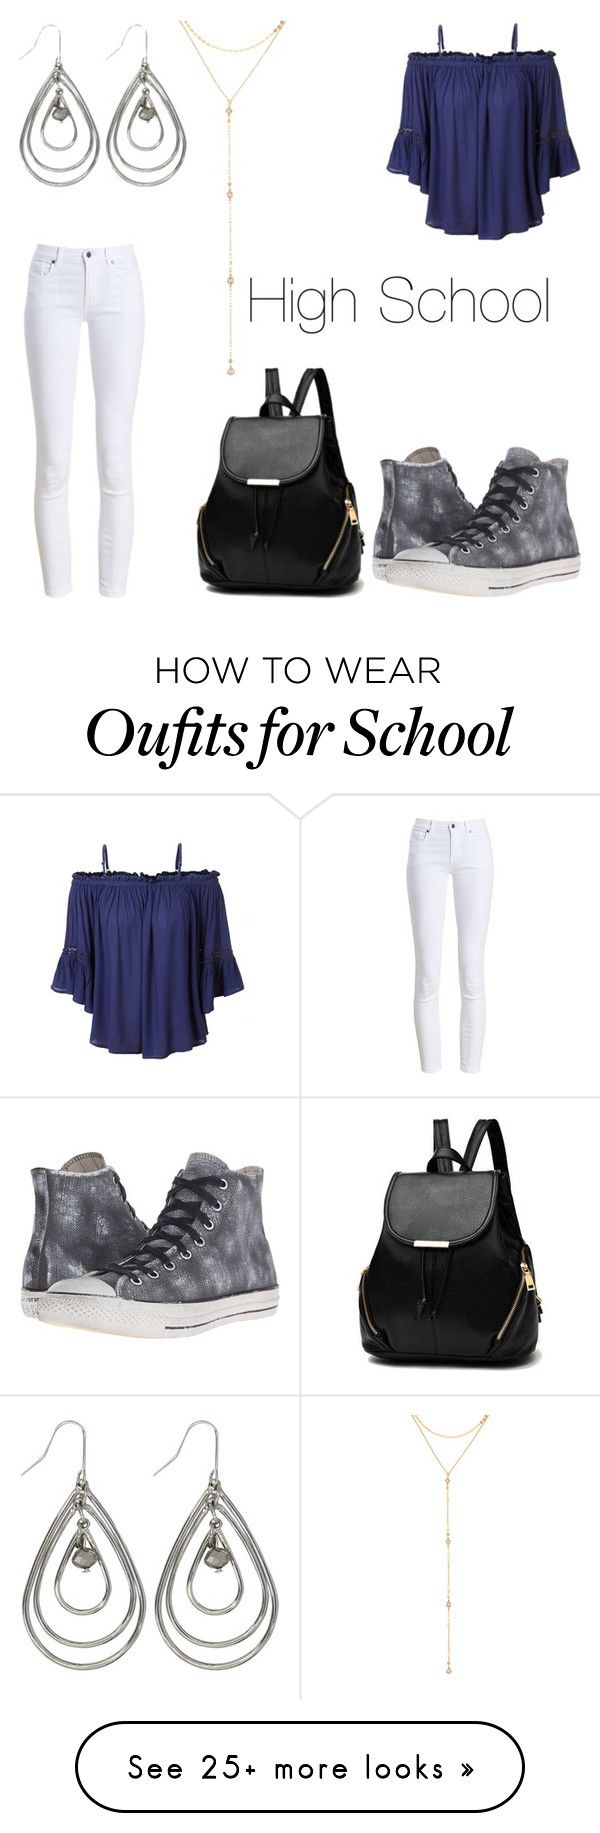 """High School"" by xhermelienx on Polyvore featuring Barbour, LE3NO, Converse, M&Co and Fragments"